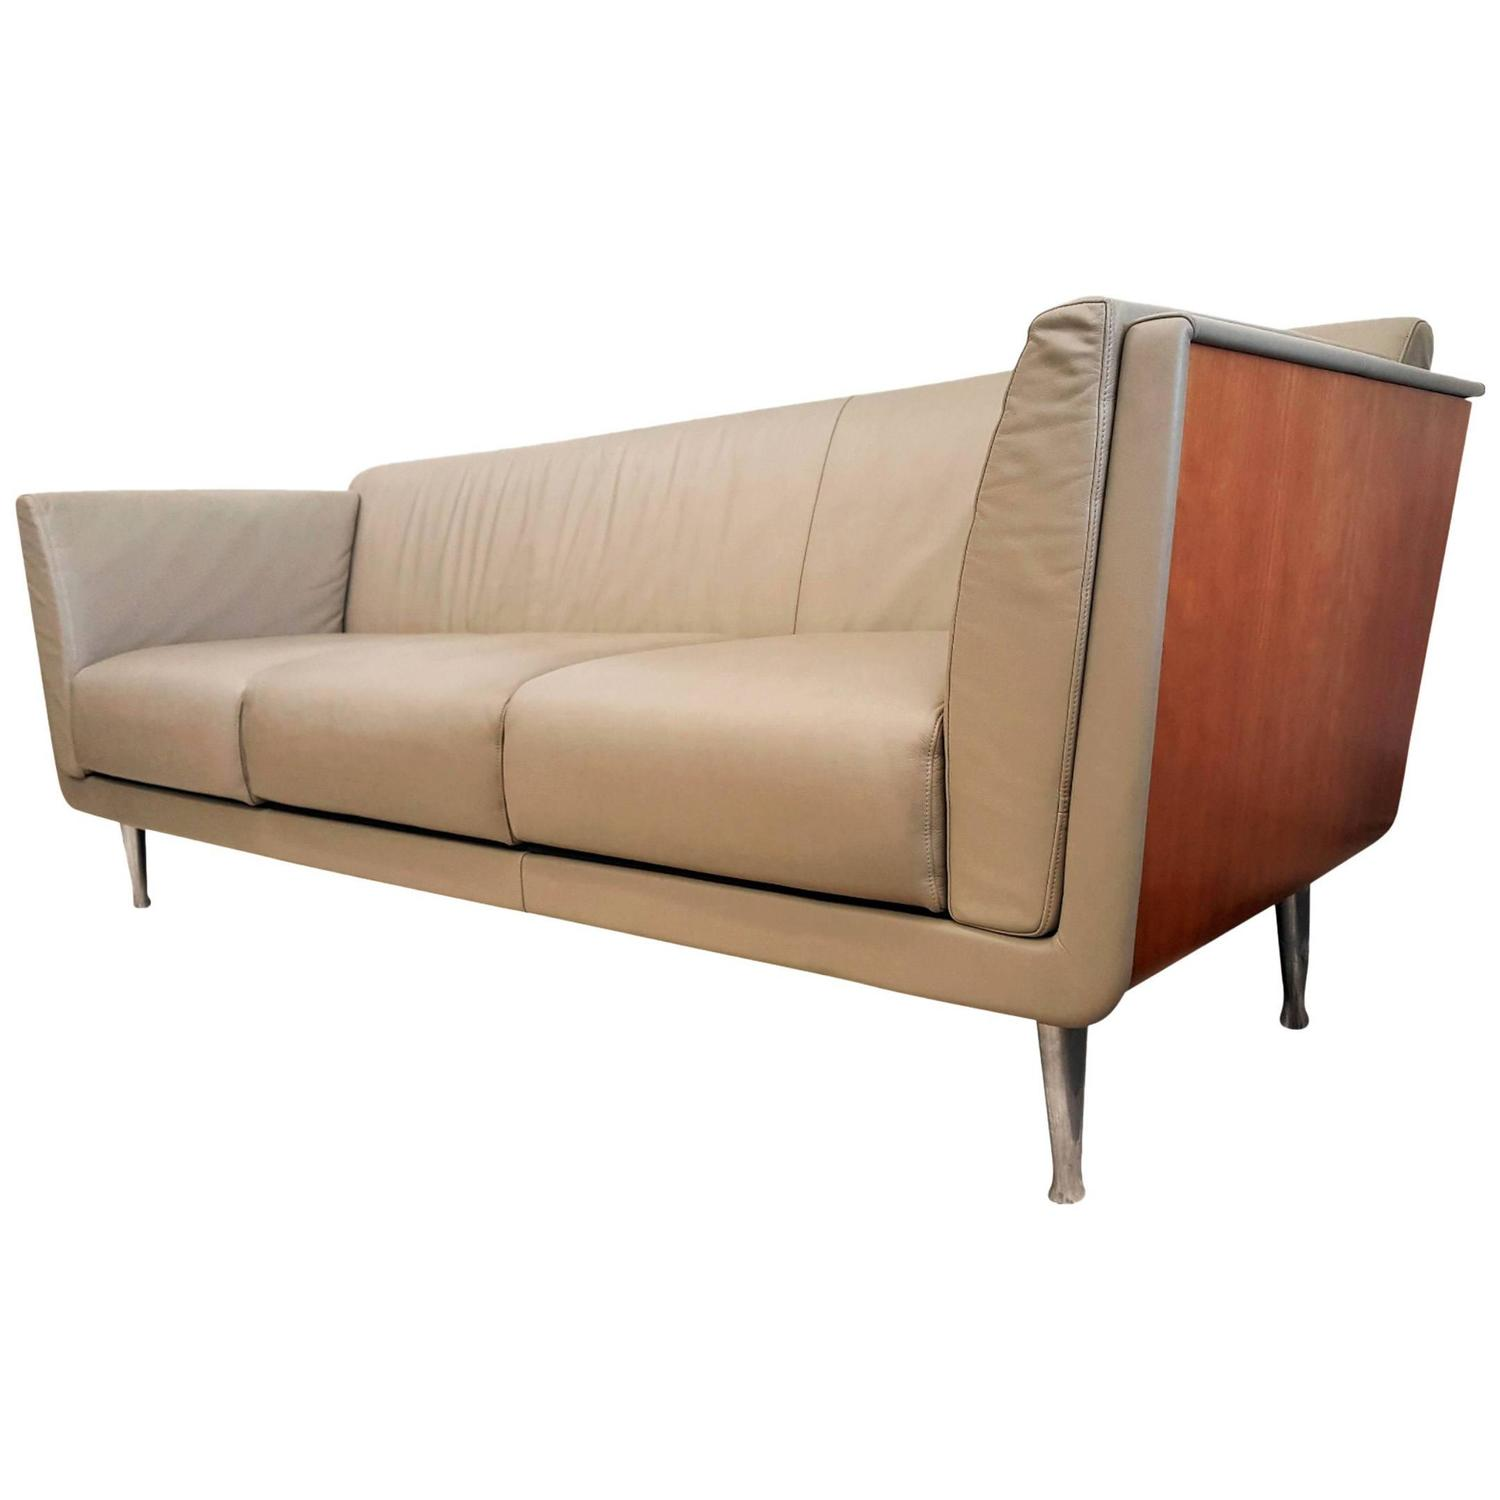 Mark goetz for herman miller cherry wrapped tan leather for Furniture markup